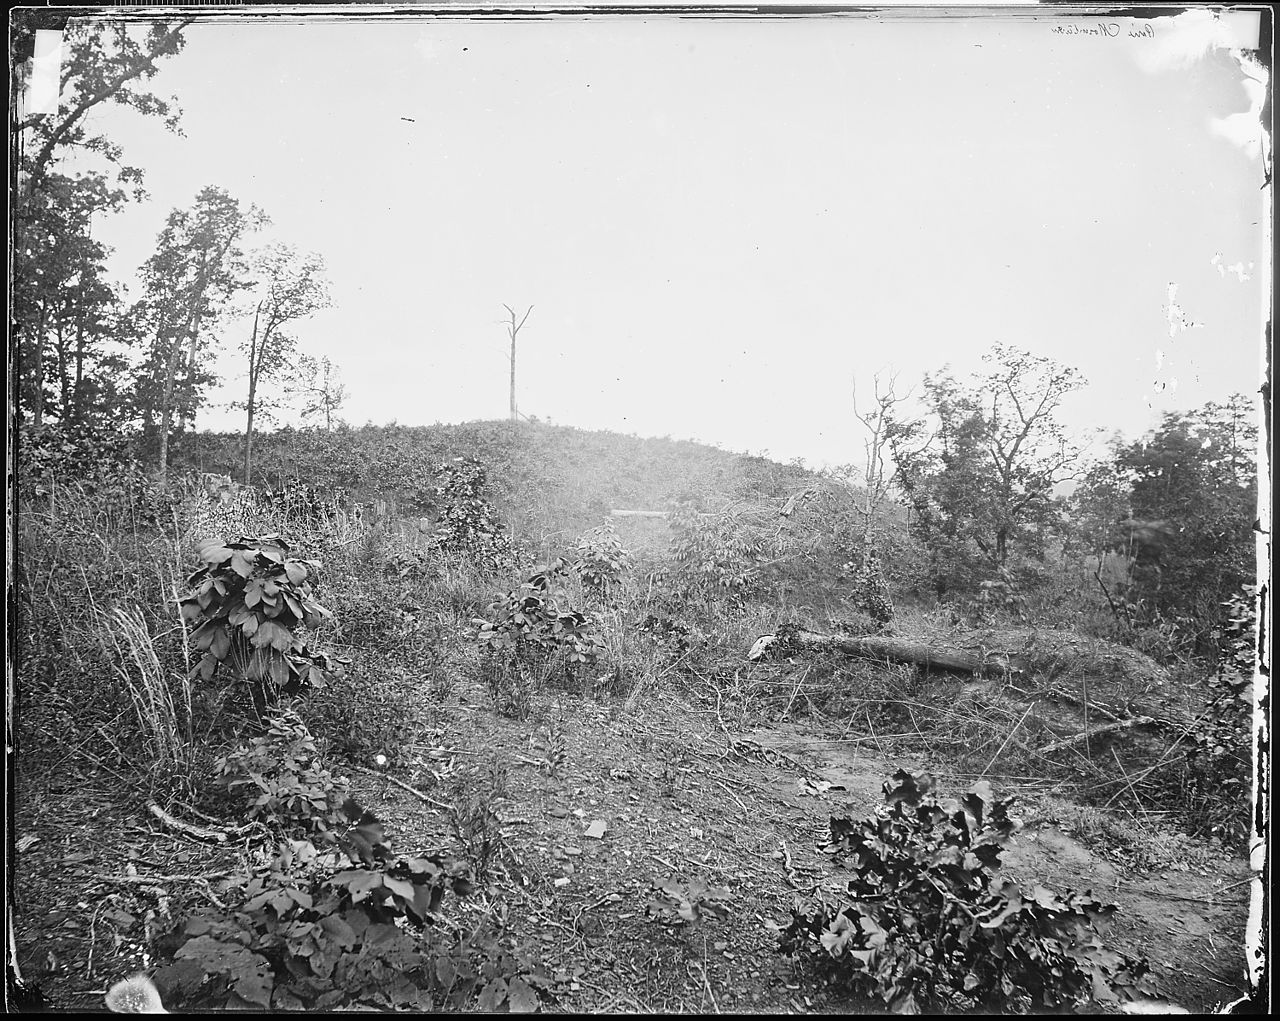 Pine Mountain, Georgia, where Gen. Polk was Killed (Library of Congress)